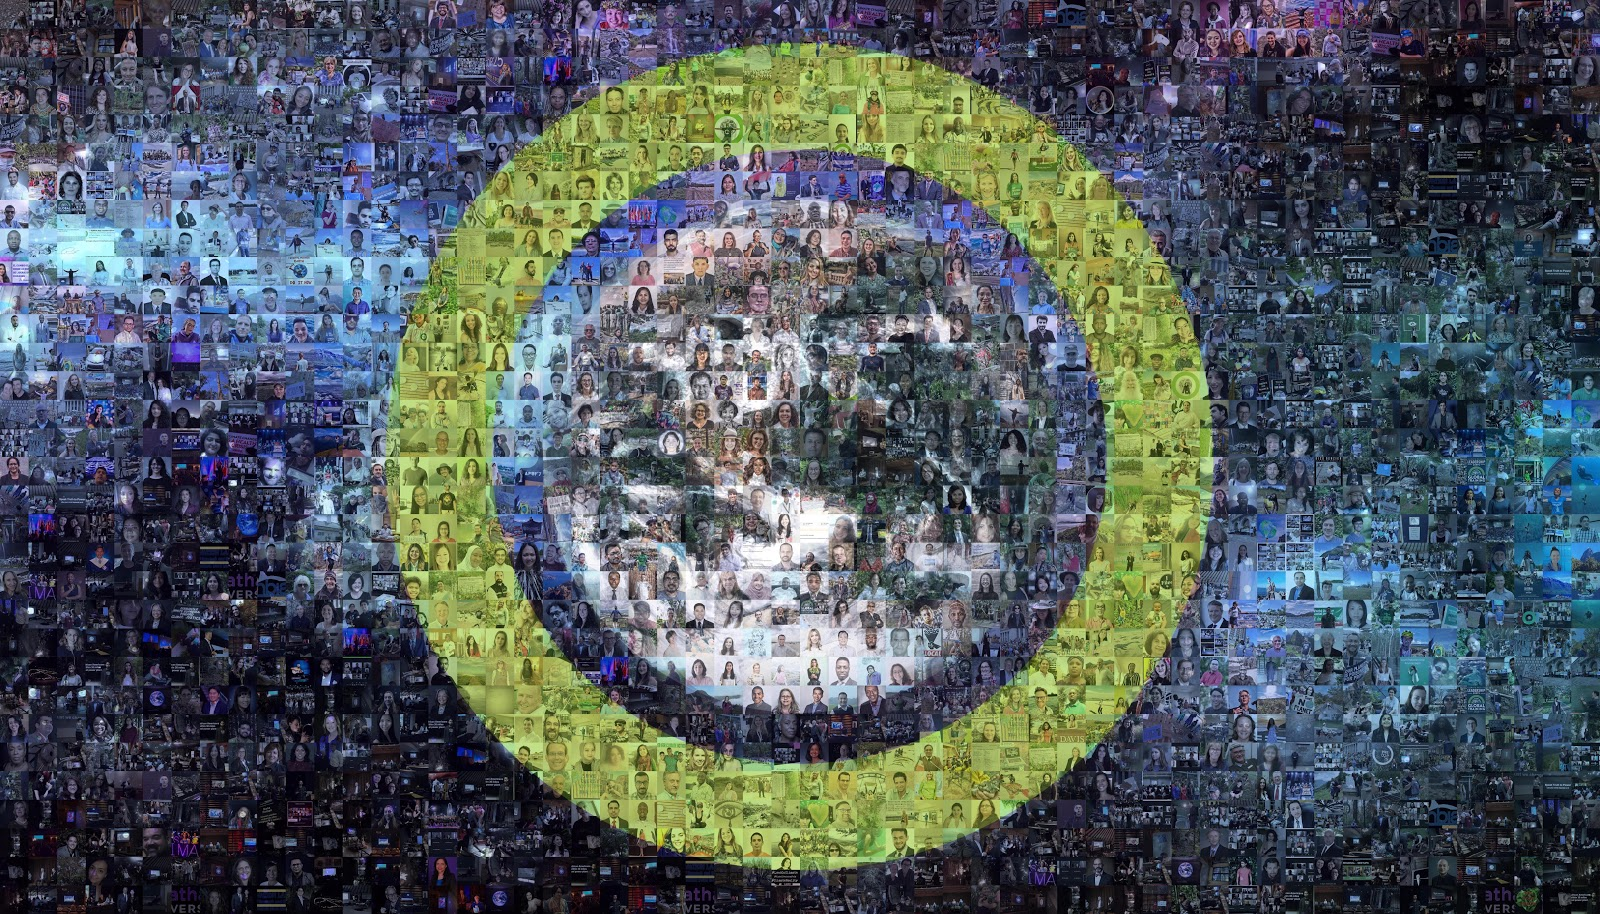 Image of art created by placing photos of virtual event attendees into a mosaic pattern.